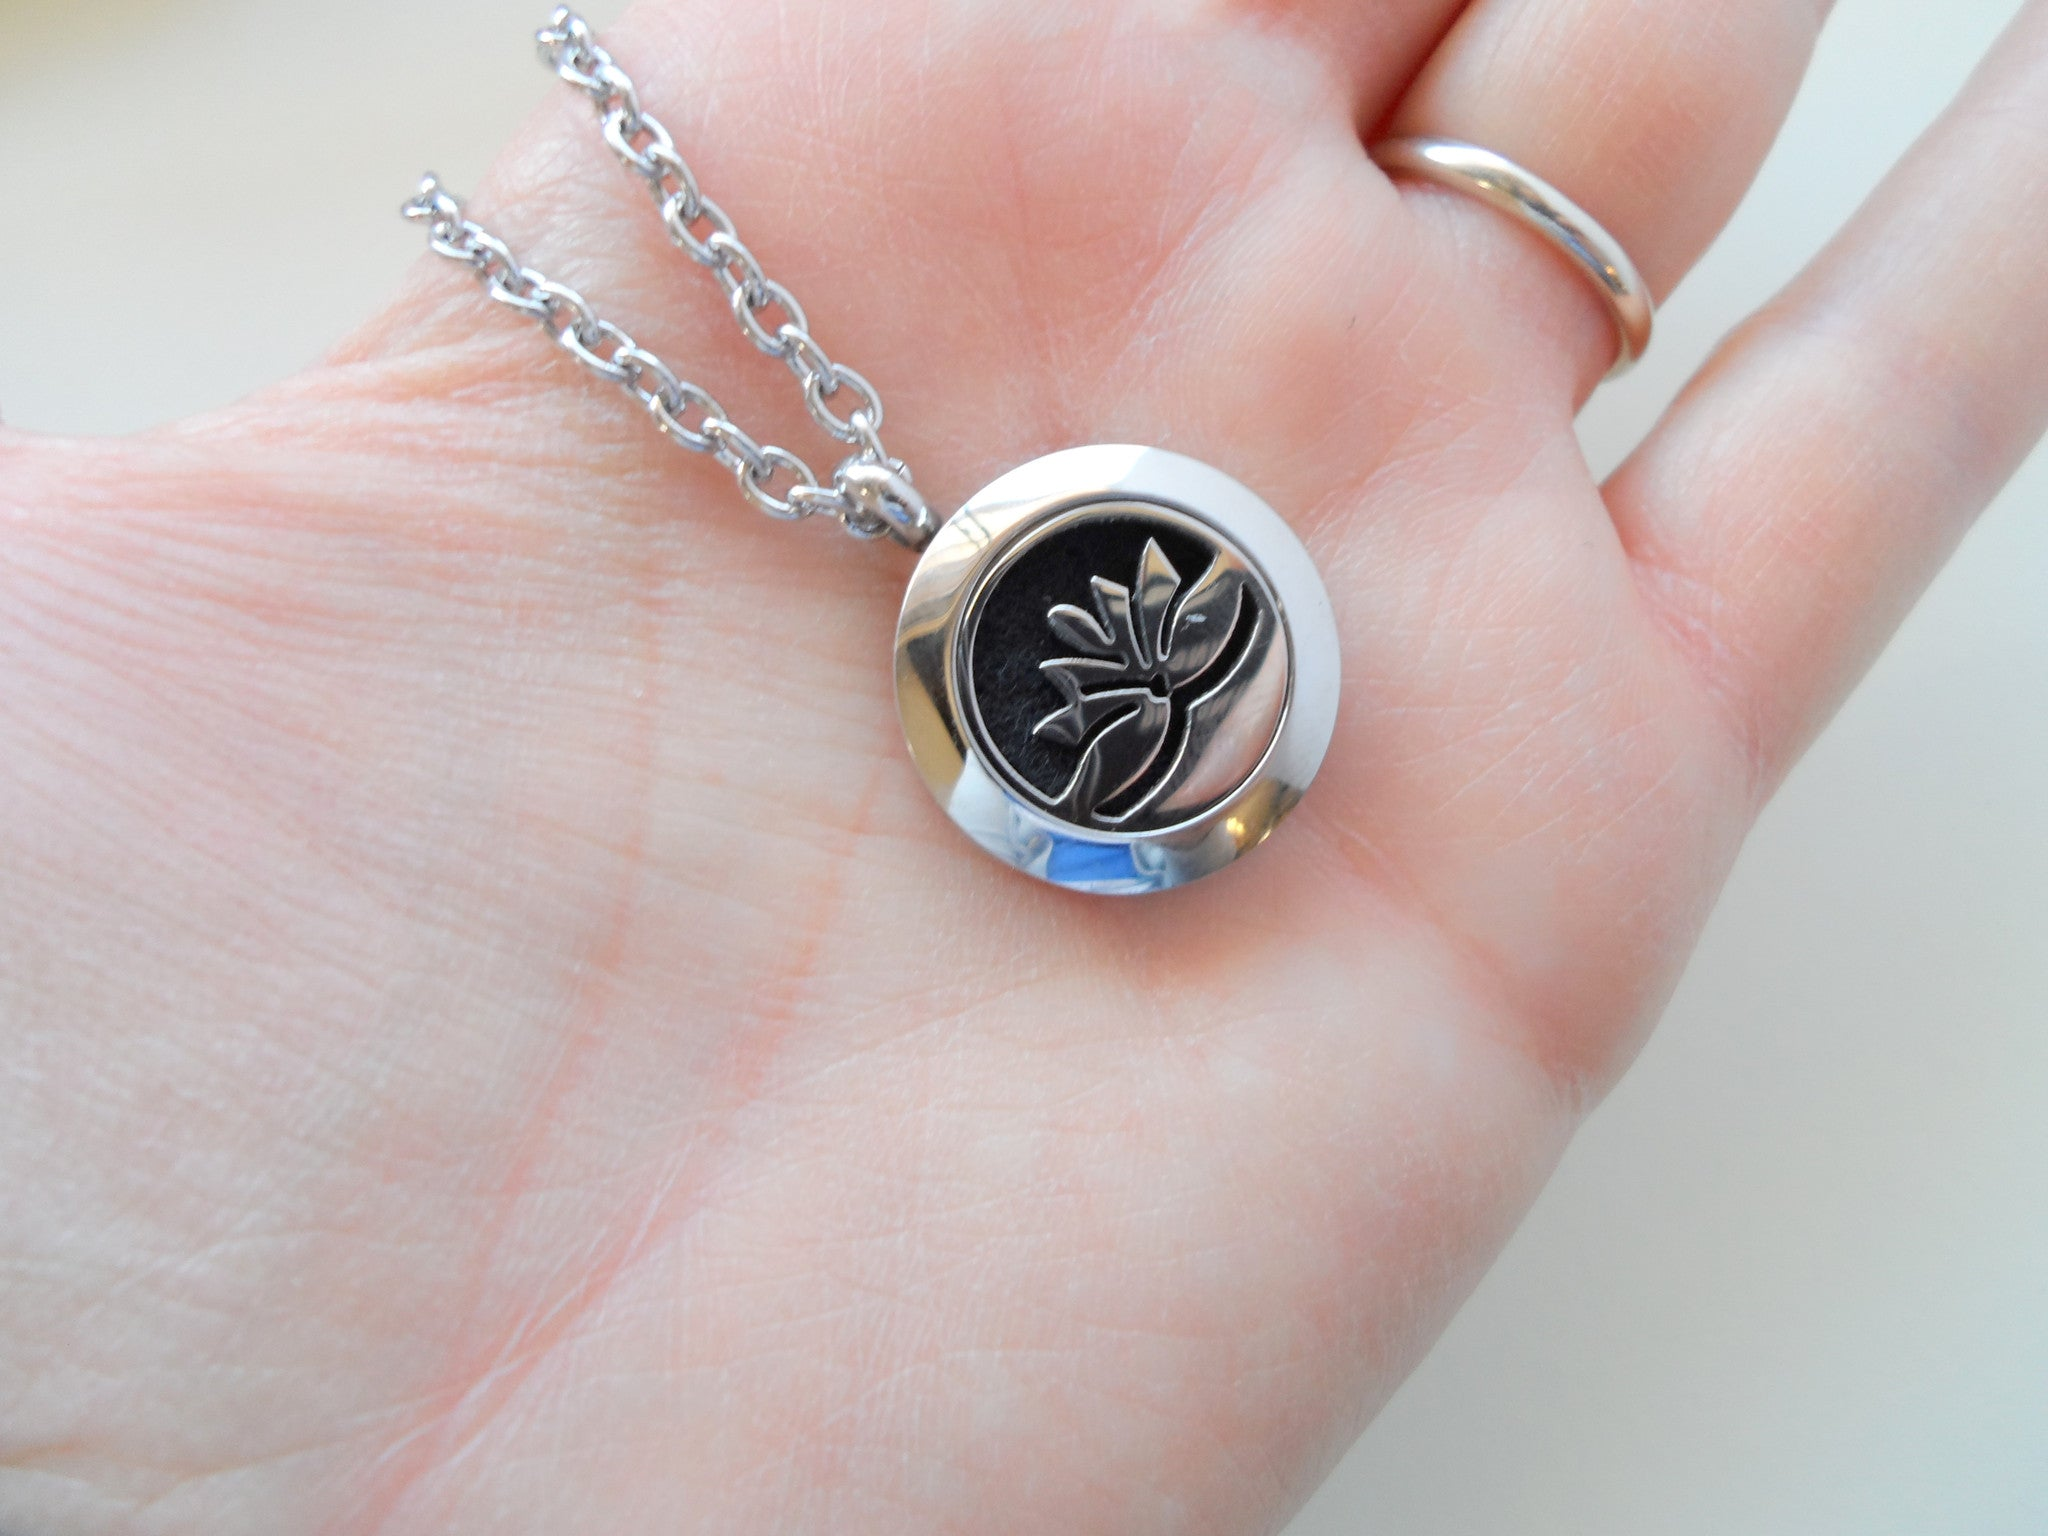 Oil Diffuser Locket Necklace W Lotus Flower Design By Je